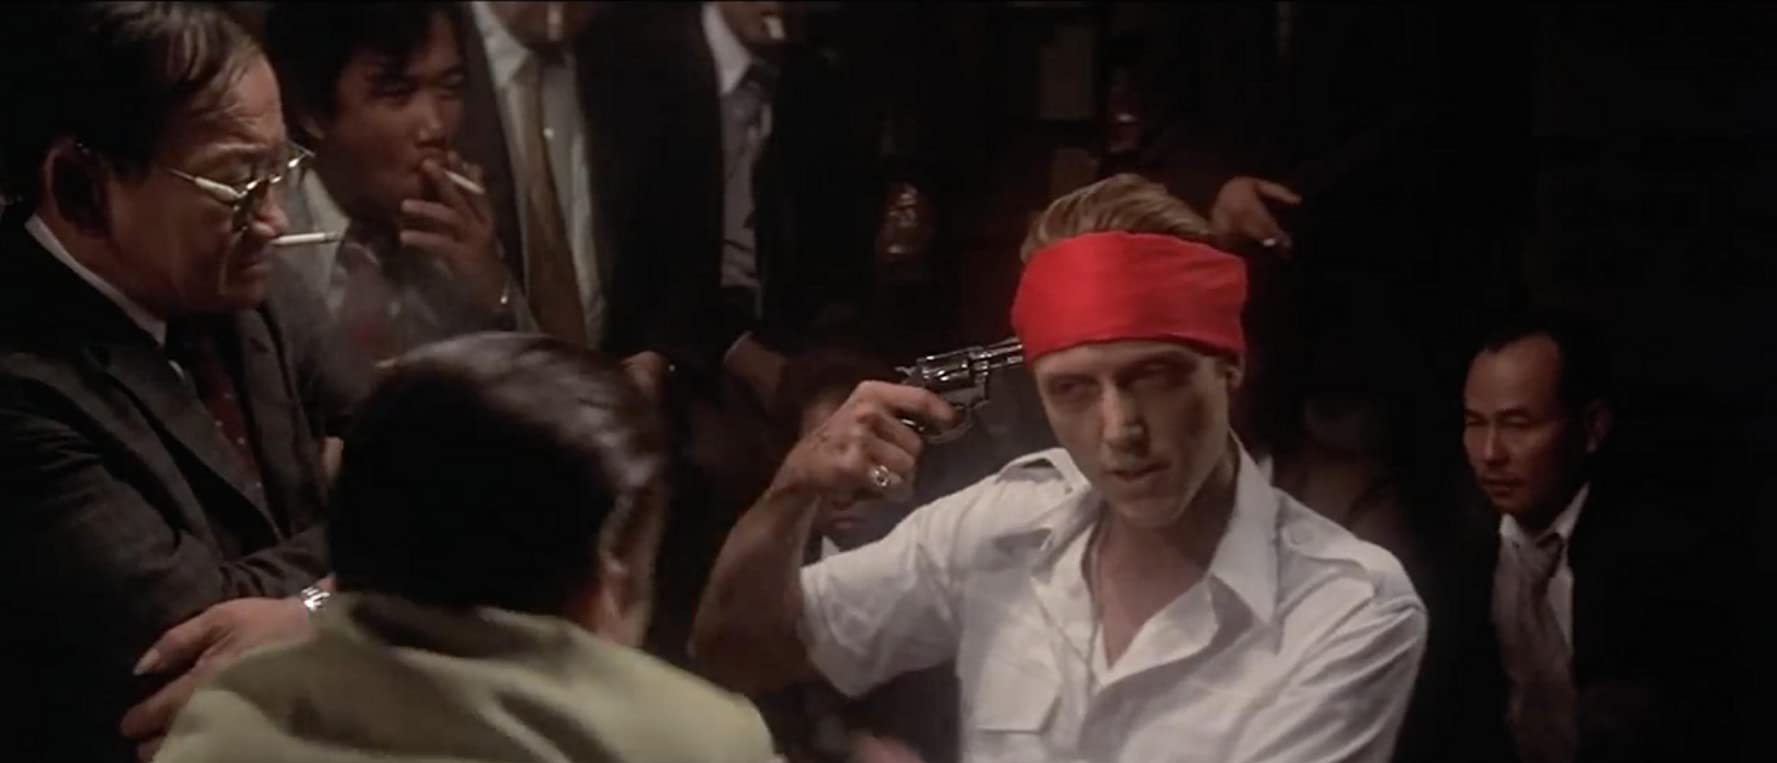 Robert De Niro and Christopher Walken in The Deer Hunter 1978